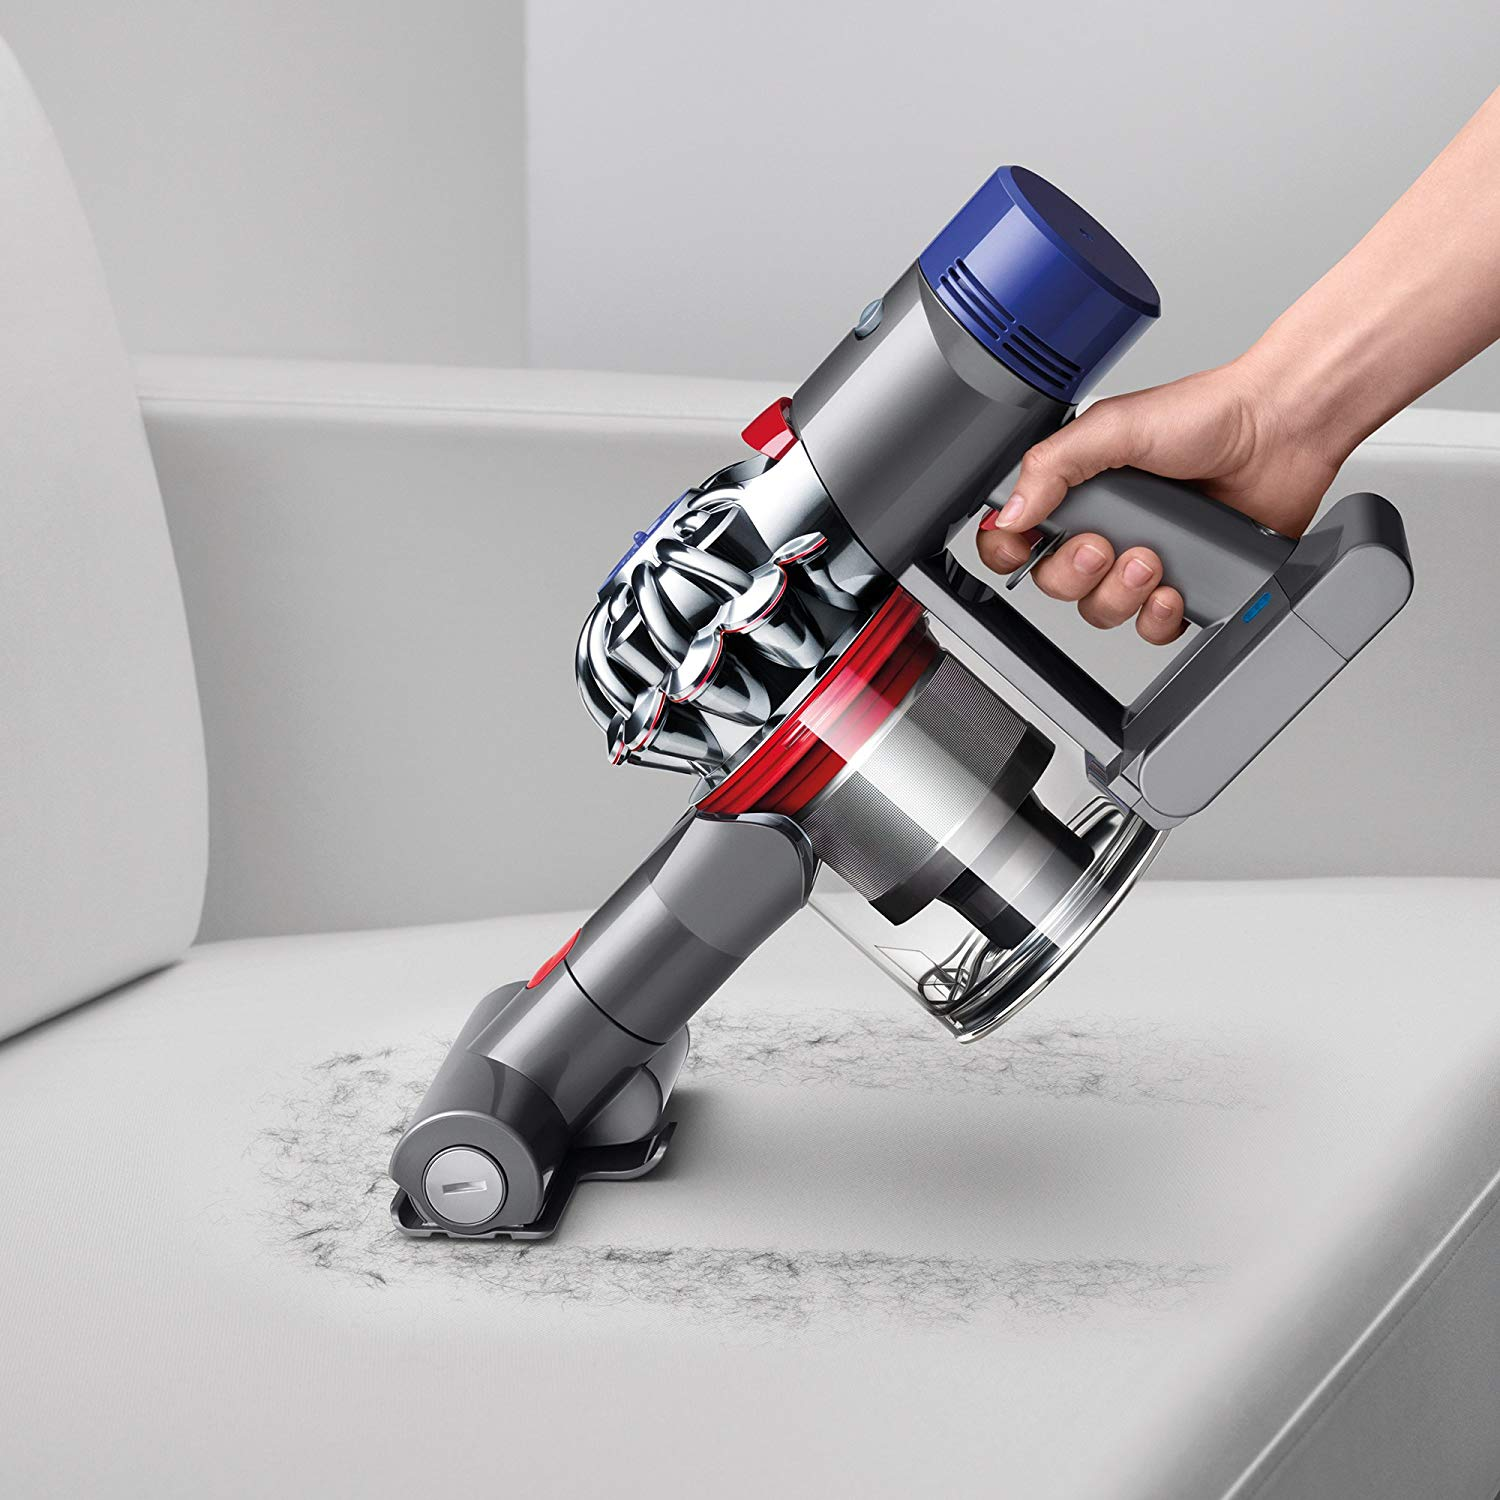 Dyson-V7-Animal-Cordless-Stick-Vacuum-Cleaner